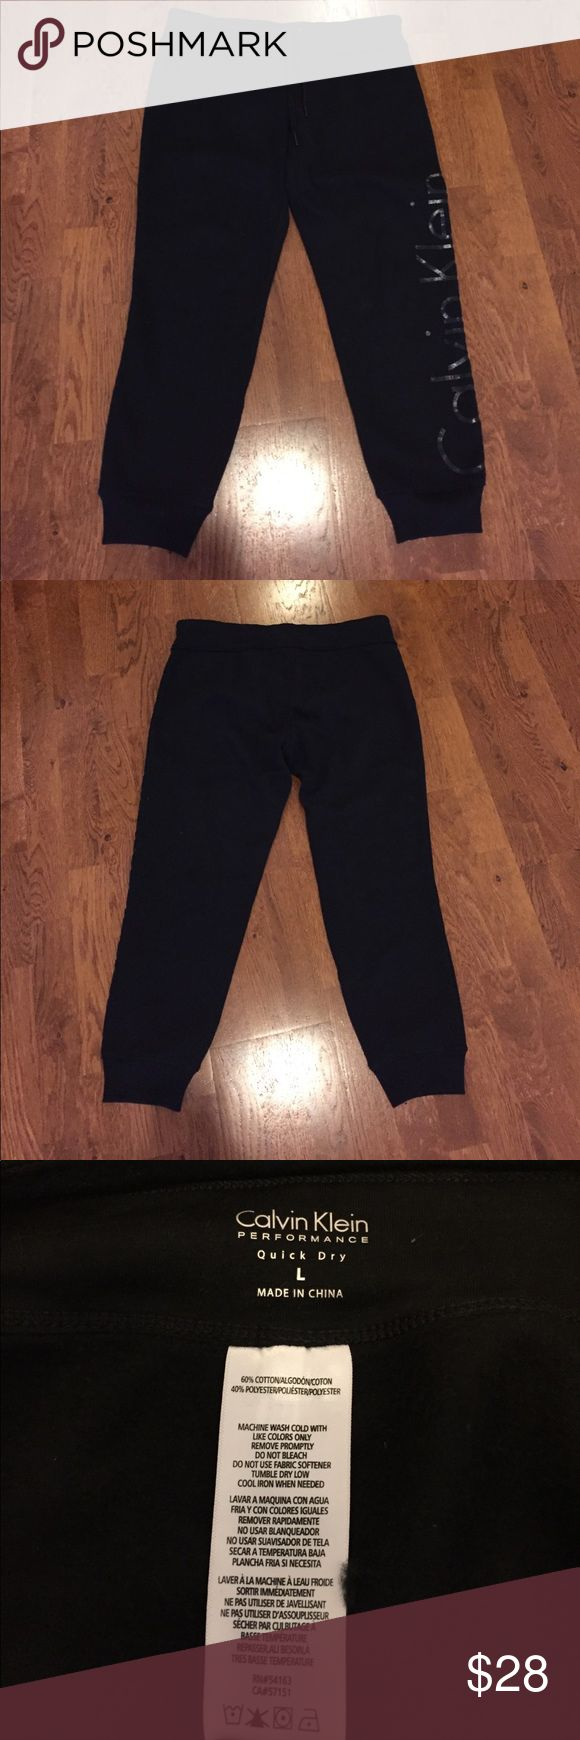 Calvin Klein Performance Black Jogger Calvin Klein Performance Black Jogger. Size large. Quick dry. Super soft and comfortable. Perfect for lounging or being comfortable while out and about! Worn once. Perfect condition. Accepting offers! Calvin Klein Pants Track Pants & Joggers